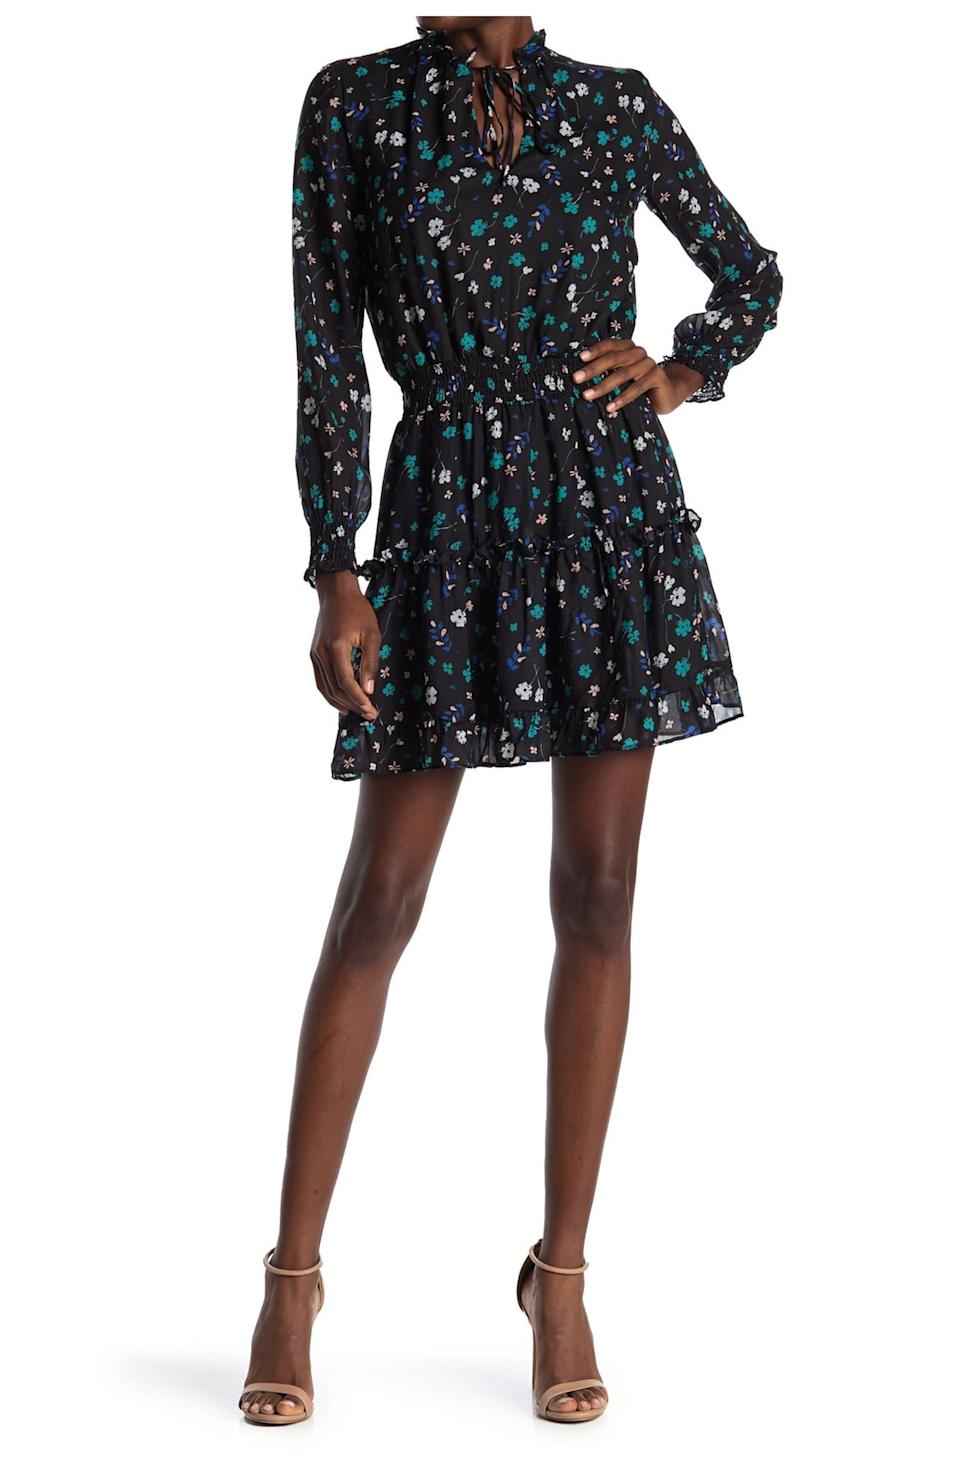 """<h2>NSR Emma Floral Print Ruffle Dress</h2><br>Good news — you don't have to give up your ruffles, your florals, or your smocked fits! This charming mini dress has all the romantic elements of a prairie dress but in a shorter length and a sheer fabric overlay that's perfect for evenings and date nights.<br><br><strong>The Hype:</strong> 4.1 out of 5 stars and 111 reviews on <a href=""""https://www.nordstromrack.com/s/nsr-emma-floral-print-ruffle-dress/5094166"""" rel=""""nofollow noopener"""" target=""""_blank"""" data-ylk=""""slk:NordstromRack.com"""" class=""""link rapid-noclick-resp"""">NordstromRack.com</a><br><br><strong>What They're Saying: </strong>""""So cute!! Was not sure if I should purchase this because of other reviews, but went on a limb and got it. Absolutely worth it, not too short or see through."""" — AshA, NordstromRack.com reviewer<br><br><strong>NSR</strong> Emma Floral Print Ruffle Dress, $, available at <a href=""""https://go.skimresources.com/?id=30283X879131&url=https%3A%2F%2Fwww.nordstromrack.com%2Fs%2Fnsr-emma-floral-print-ruffle-dress%2F5094166"""" rel=""""nofollow noopener"""" target=""""_blank"""" data-ylk=""""slk:Nordstrom Rack"""" class=""""link rapid-noclick-resp"""">Nordstrom Rack</a>"""